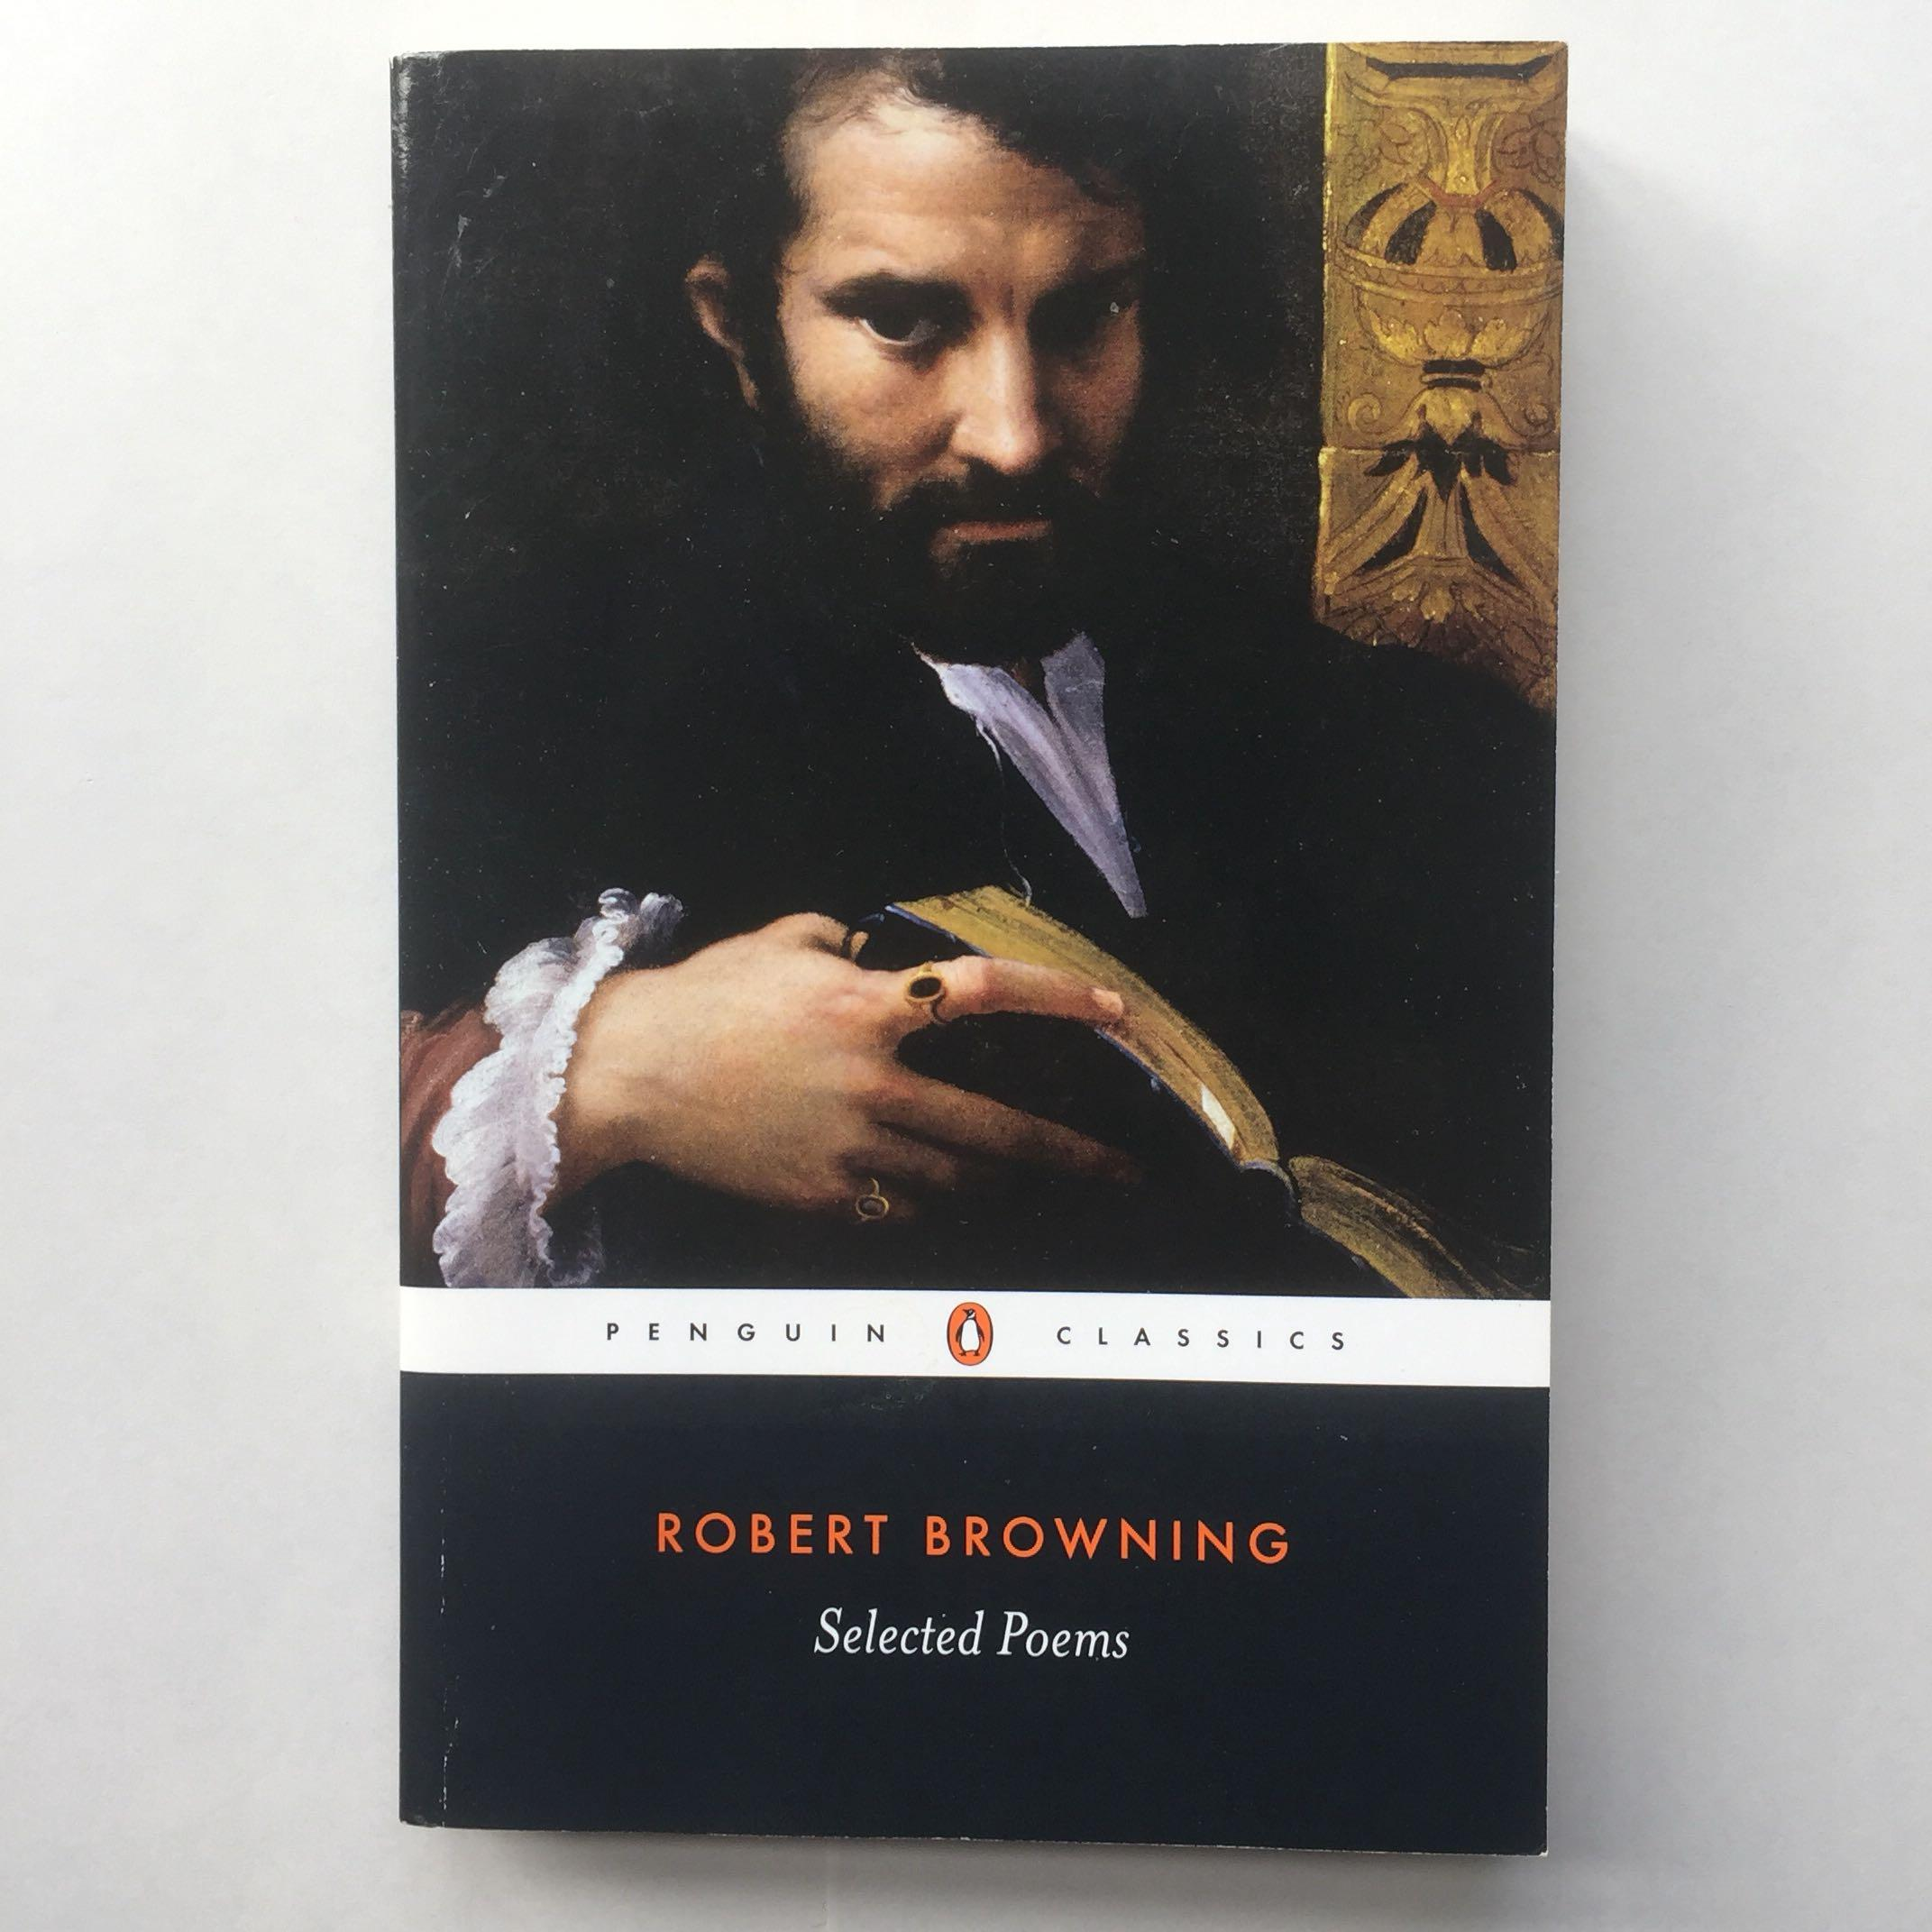 Penguin Classics, Robert Browning - Selected Poems book